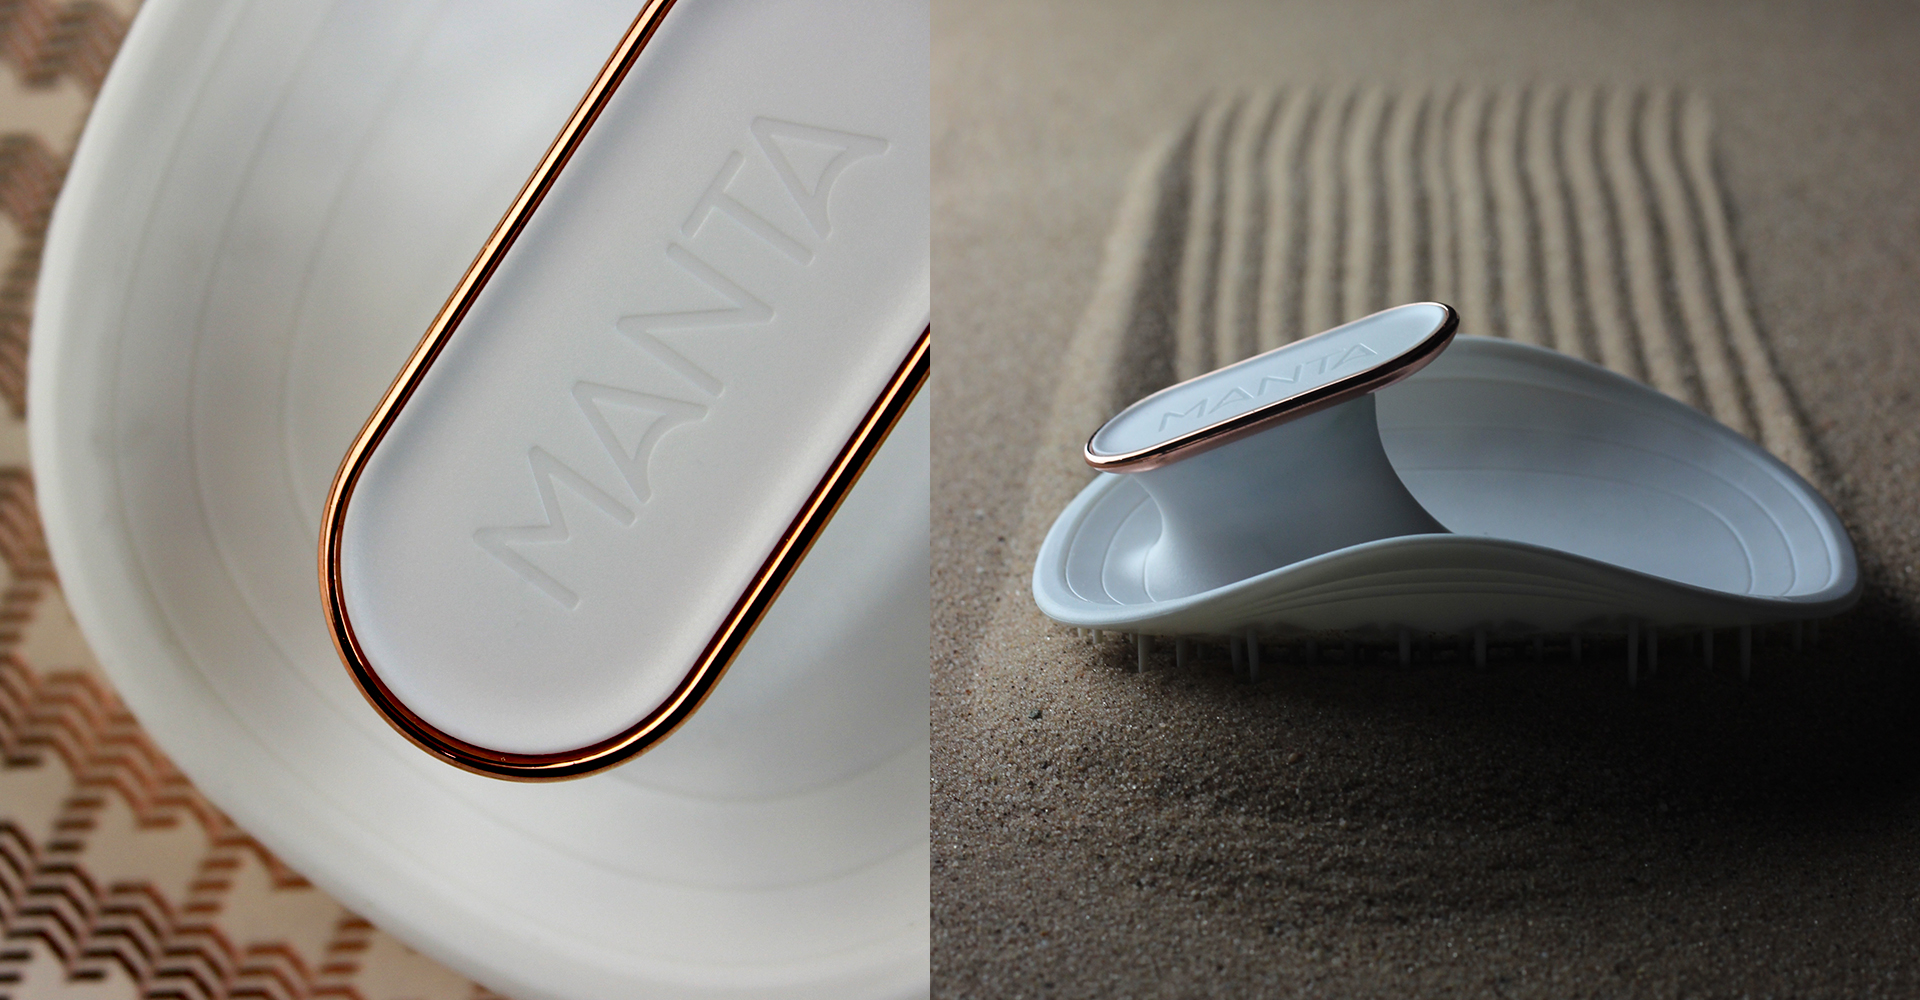 Manta - Curventa - hairbrush - black - white - brush - gold - rose gold - haircare - materials - cmf - flexible - photography - details - sand - closeup